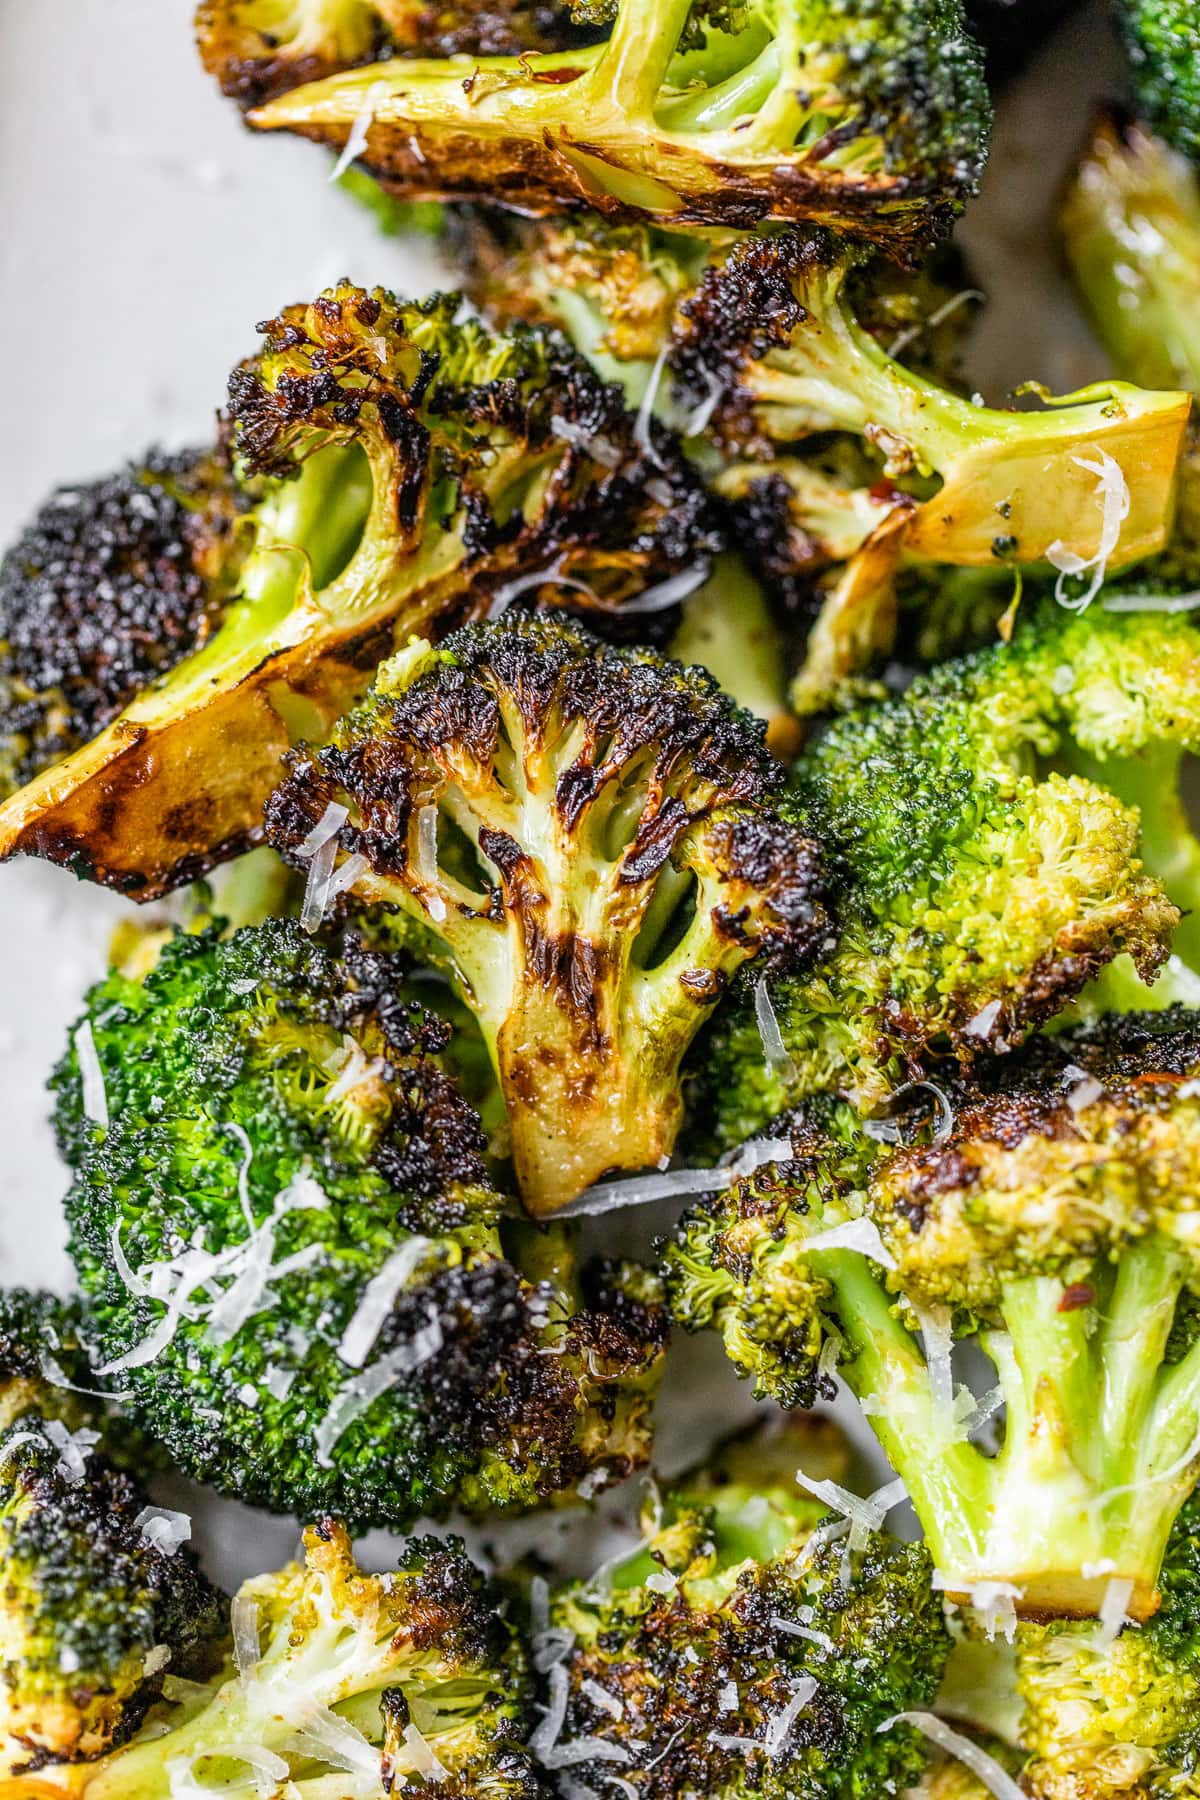 crispy grilled broccoli with Parmesan on a plate